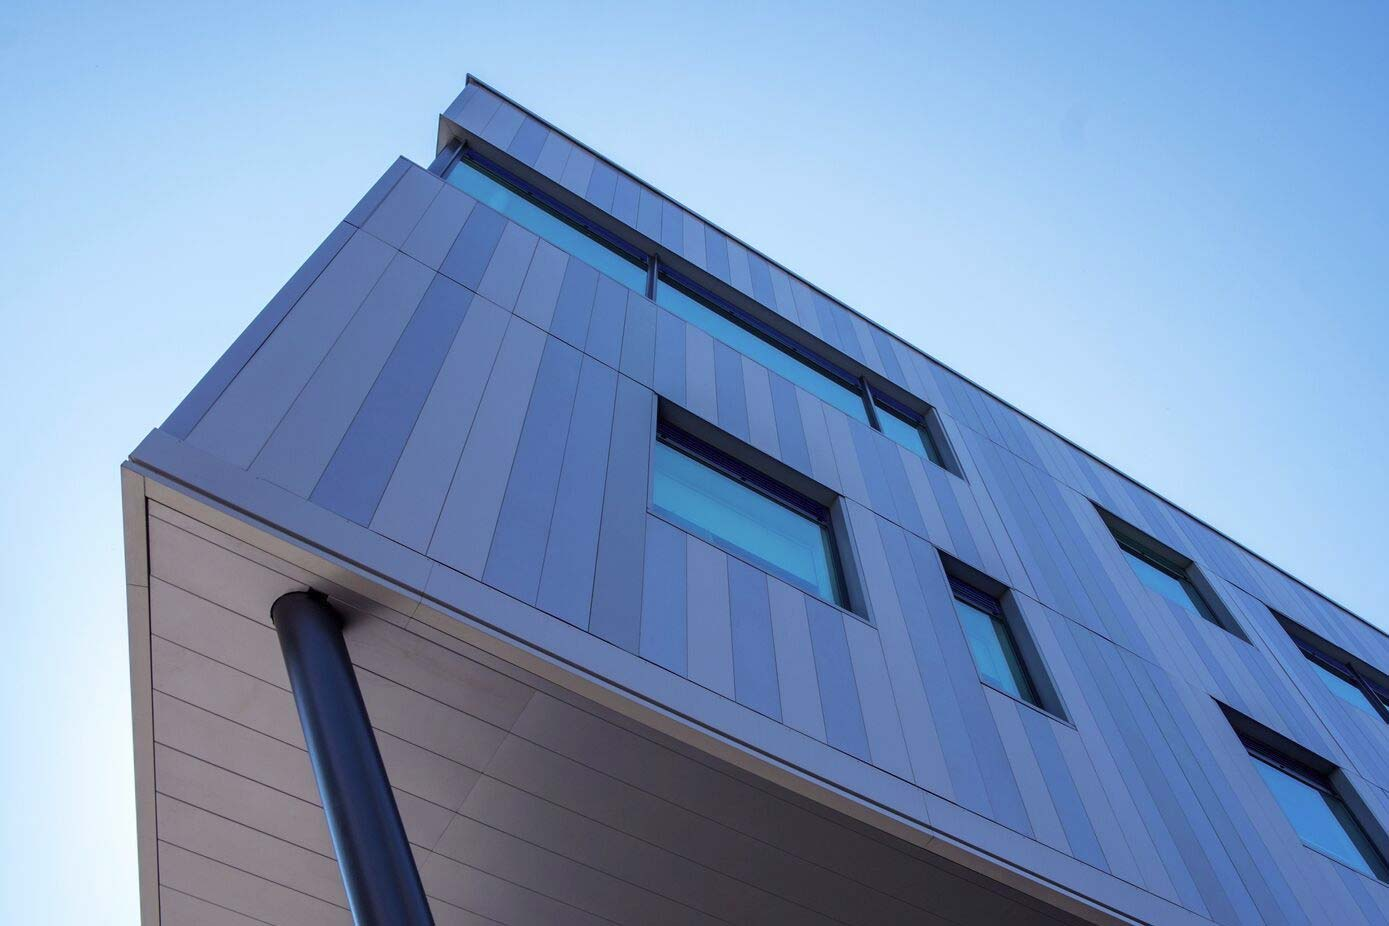 Cladding installed by Sage Roofing